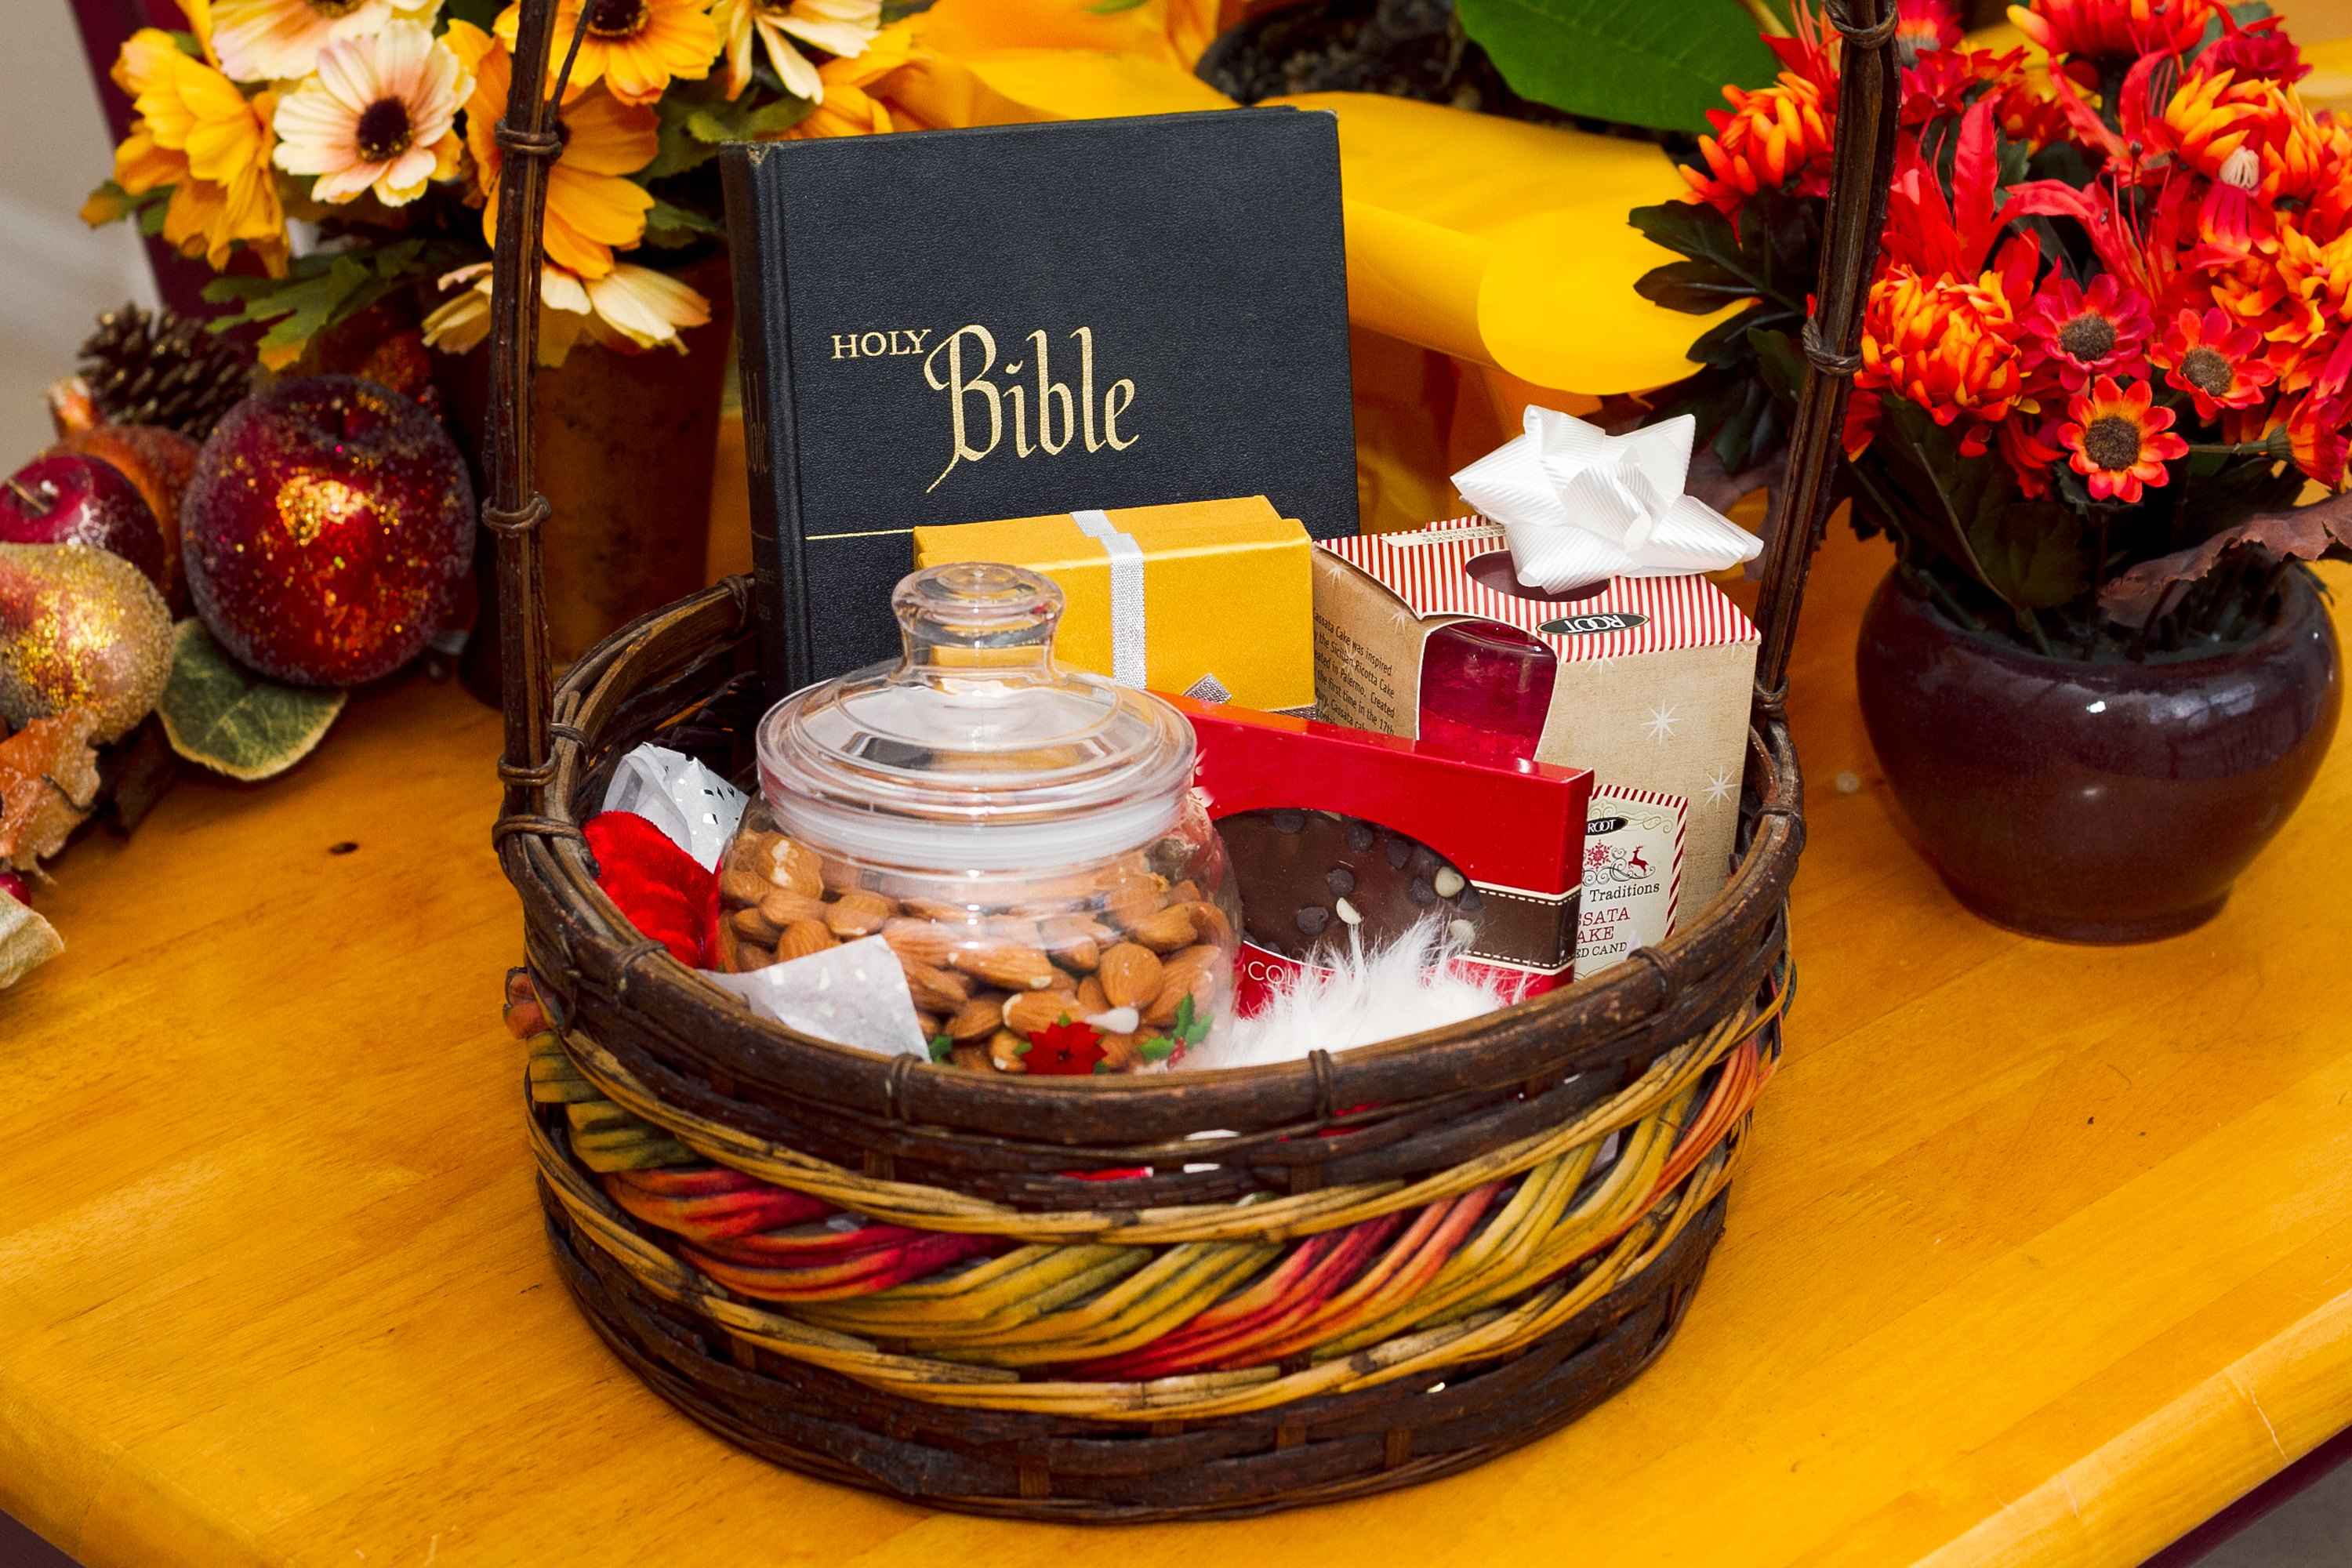 Themes For Gift Baskets: Gift Basket Ideas For Pastors (with Pictures)